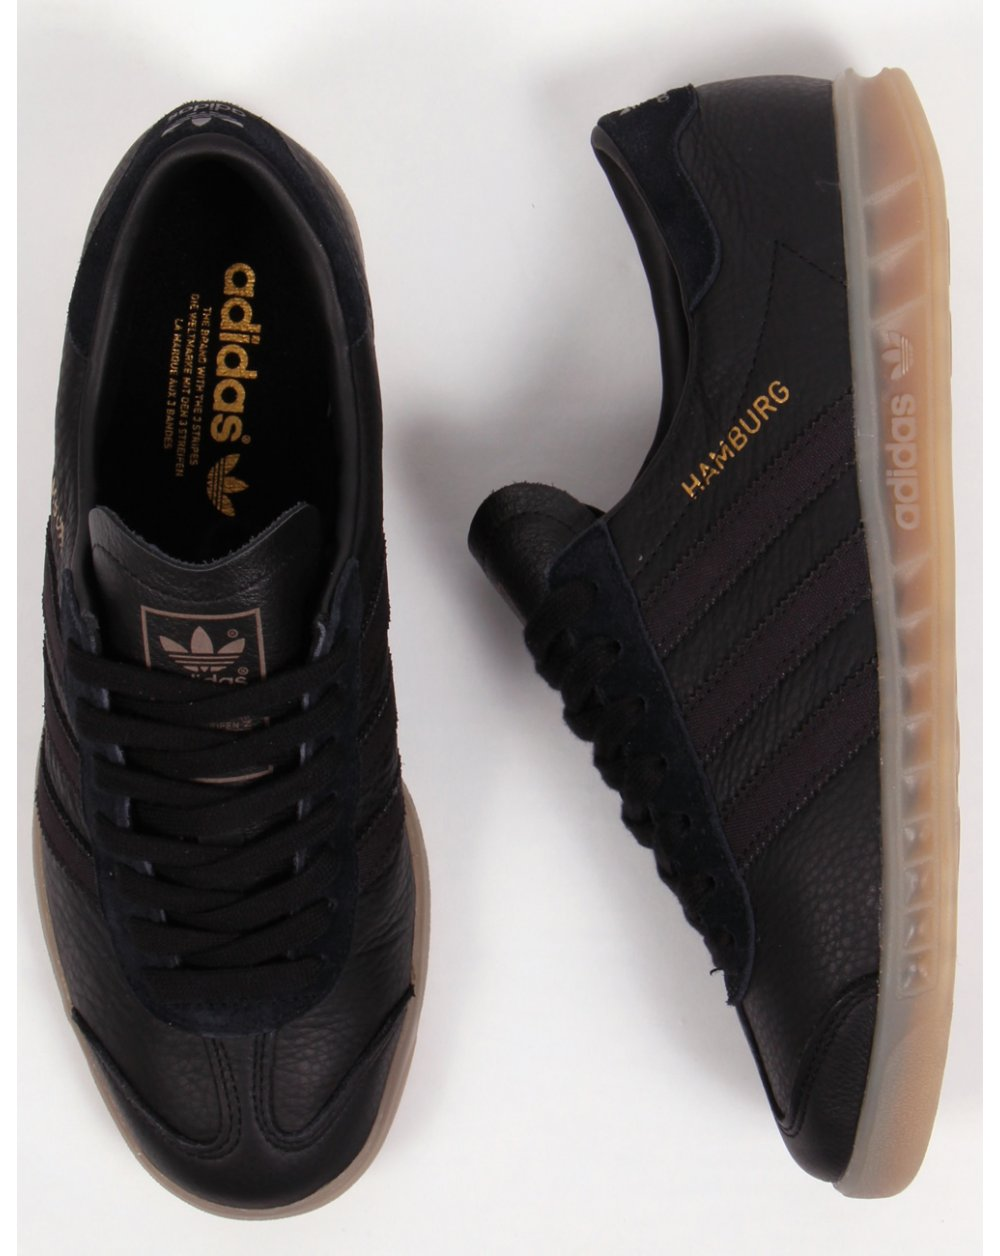 brand new 39ecc b0c41 adidas hamburg black leather